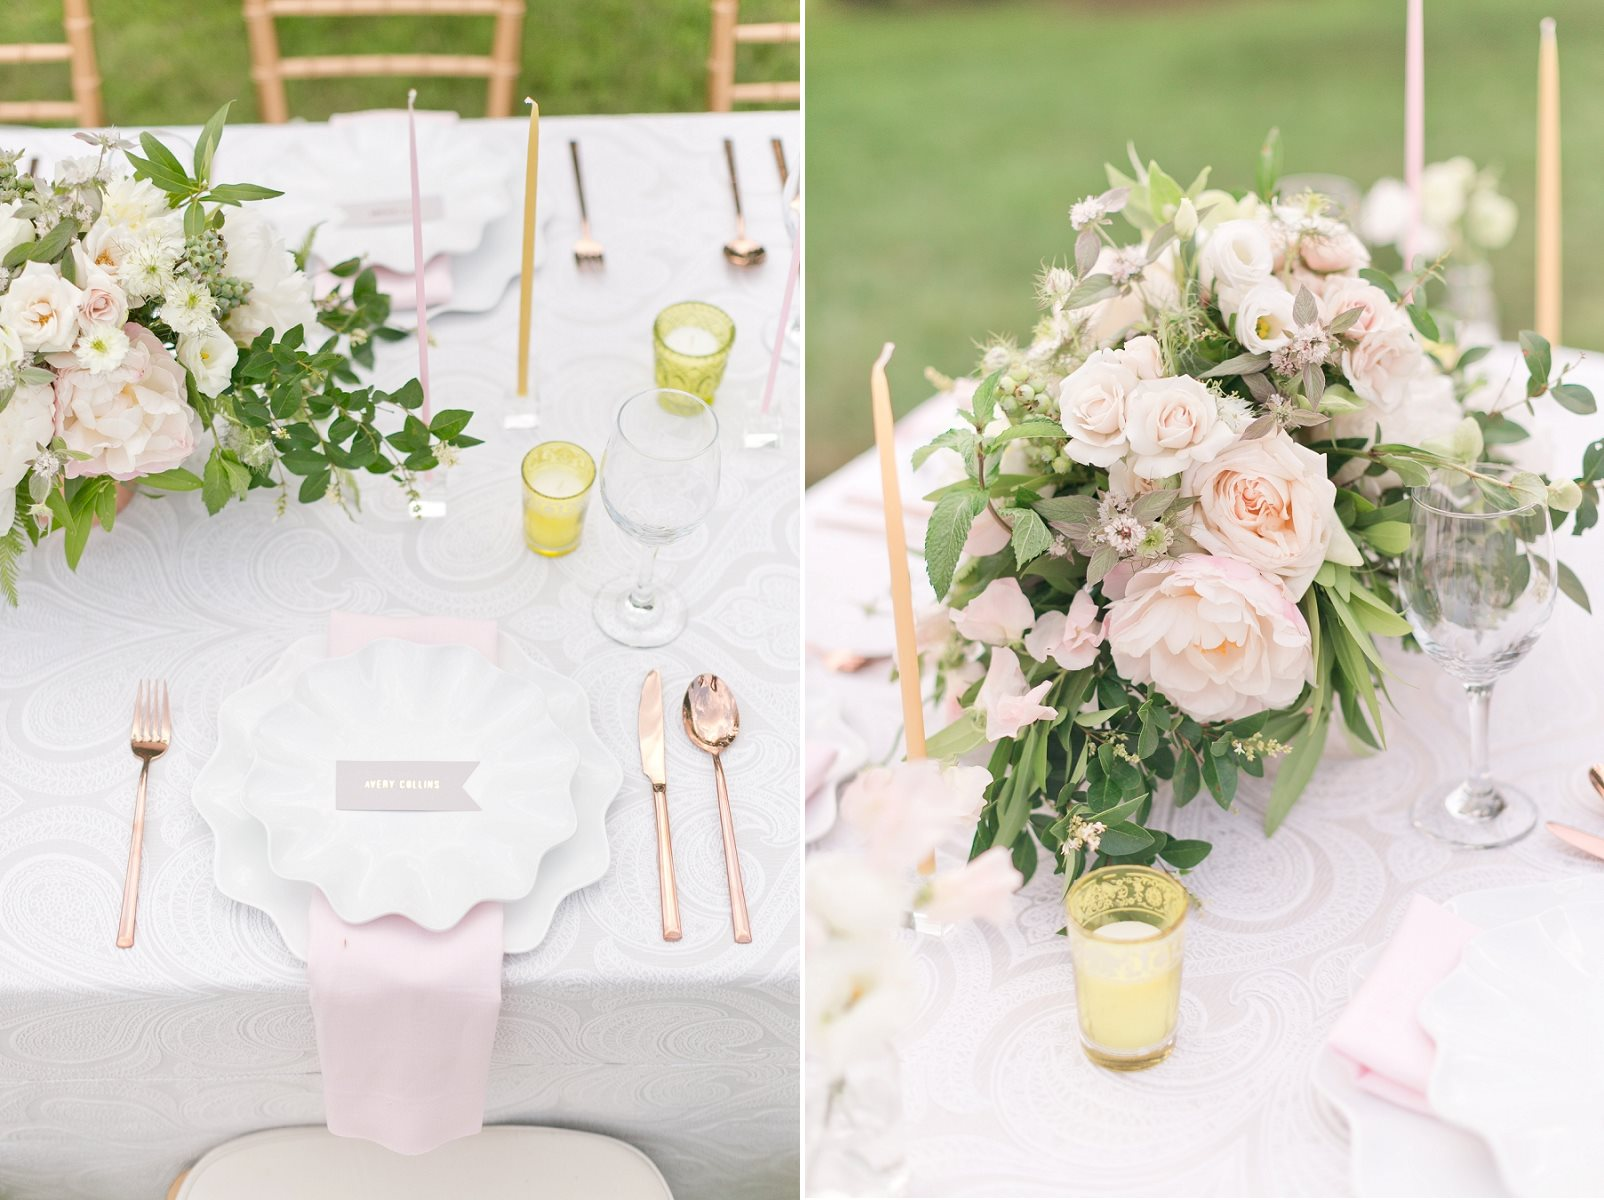 Rose Gold Wedding Centrepiece & Place Setting - Pretty Spring Wedding Ideas in Soft Pastels and Rose Gold